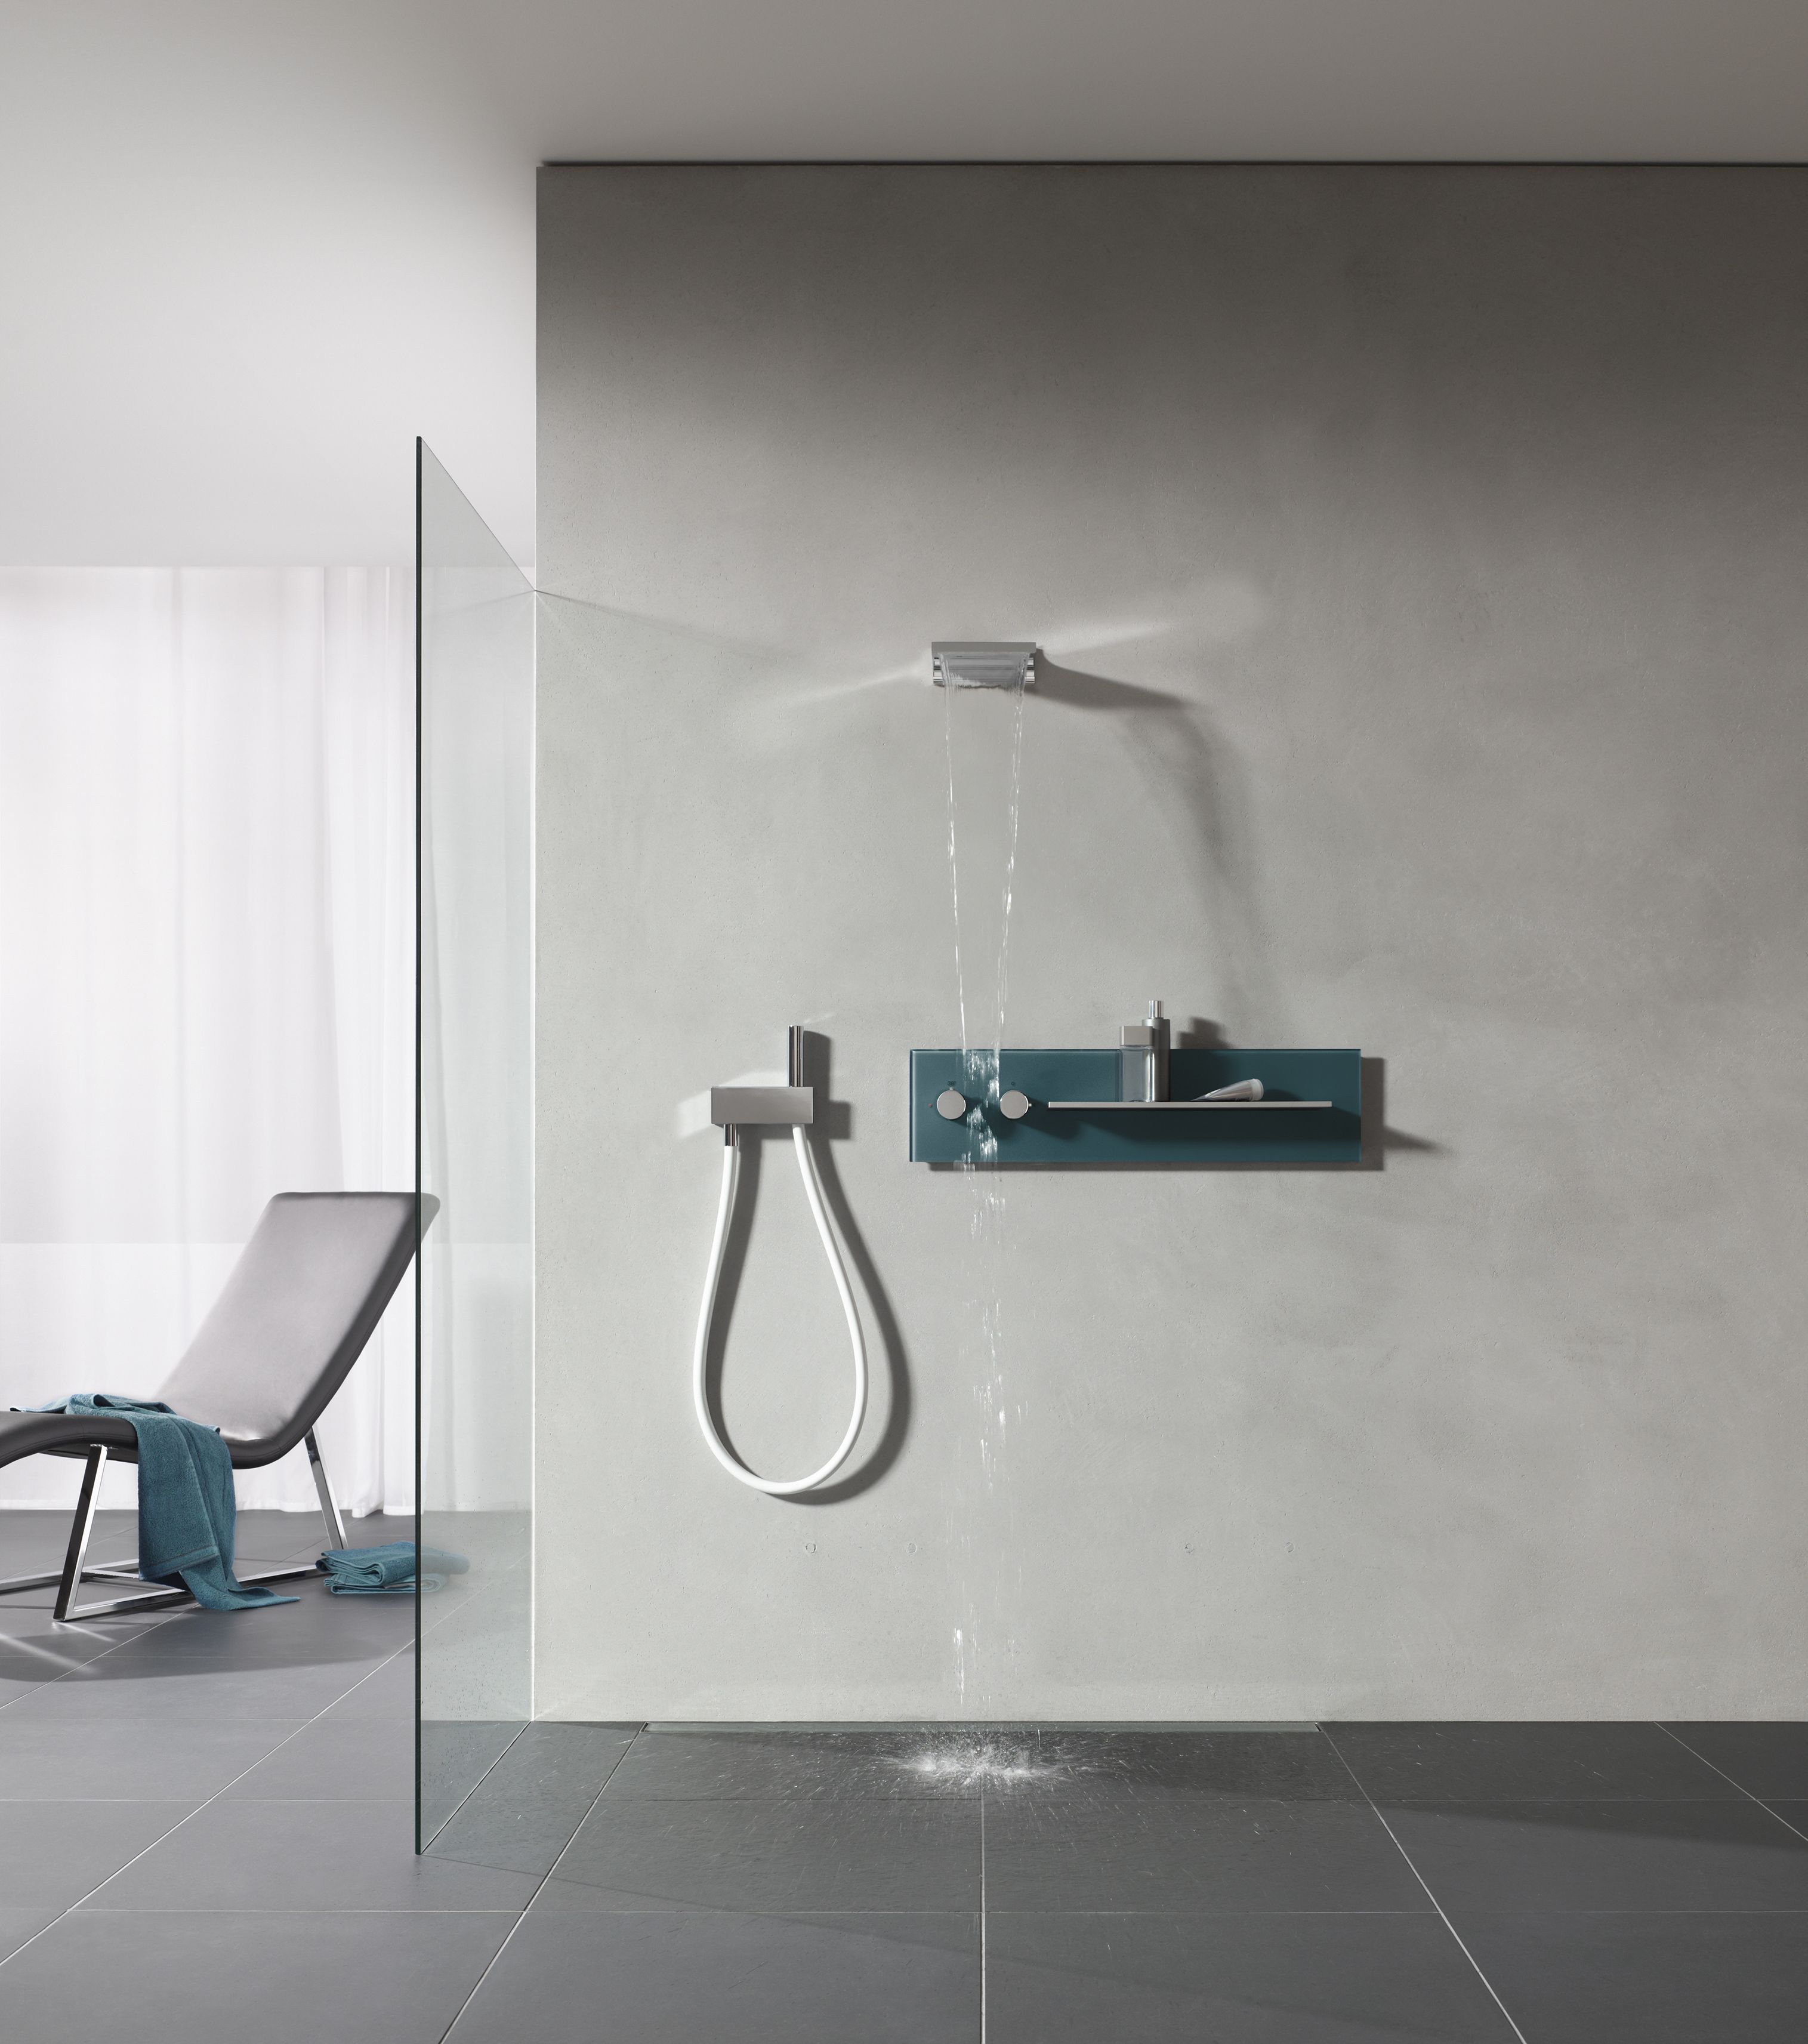 Interio Badezimmermöbel: KEUCO MeTime #BathroomFurniture #Architecture #Design